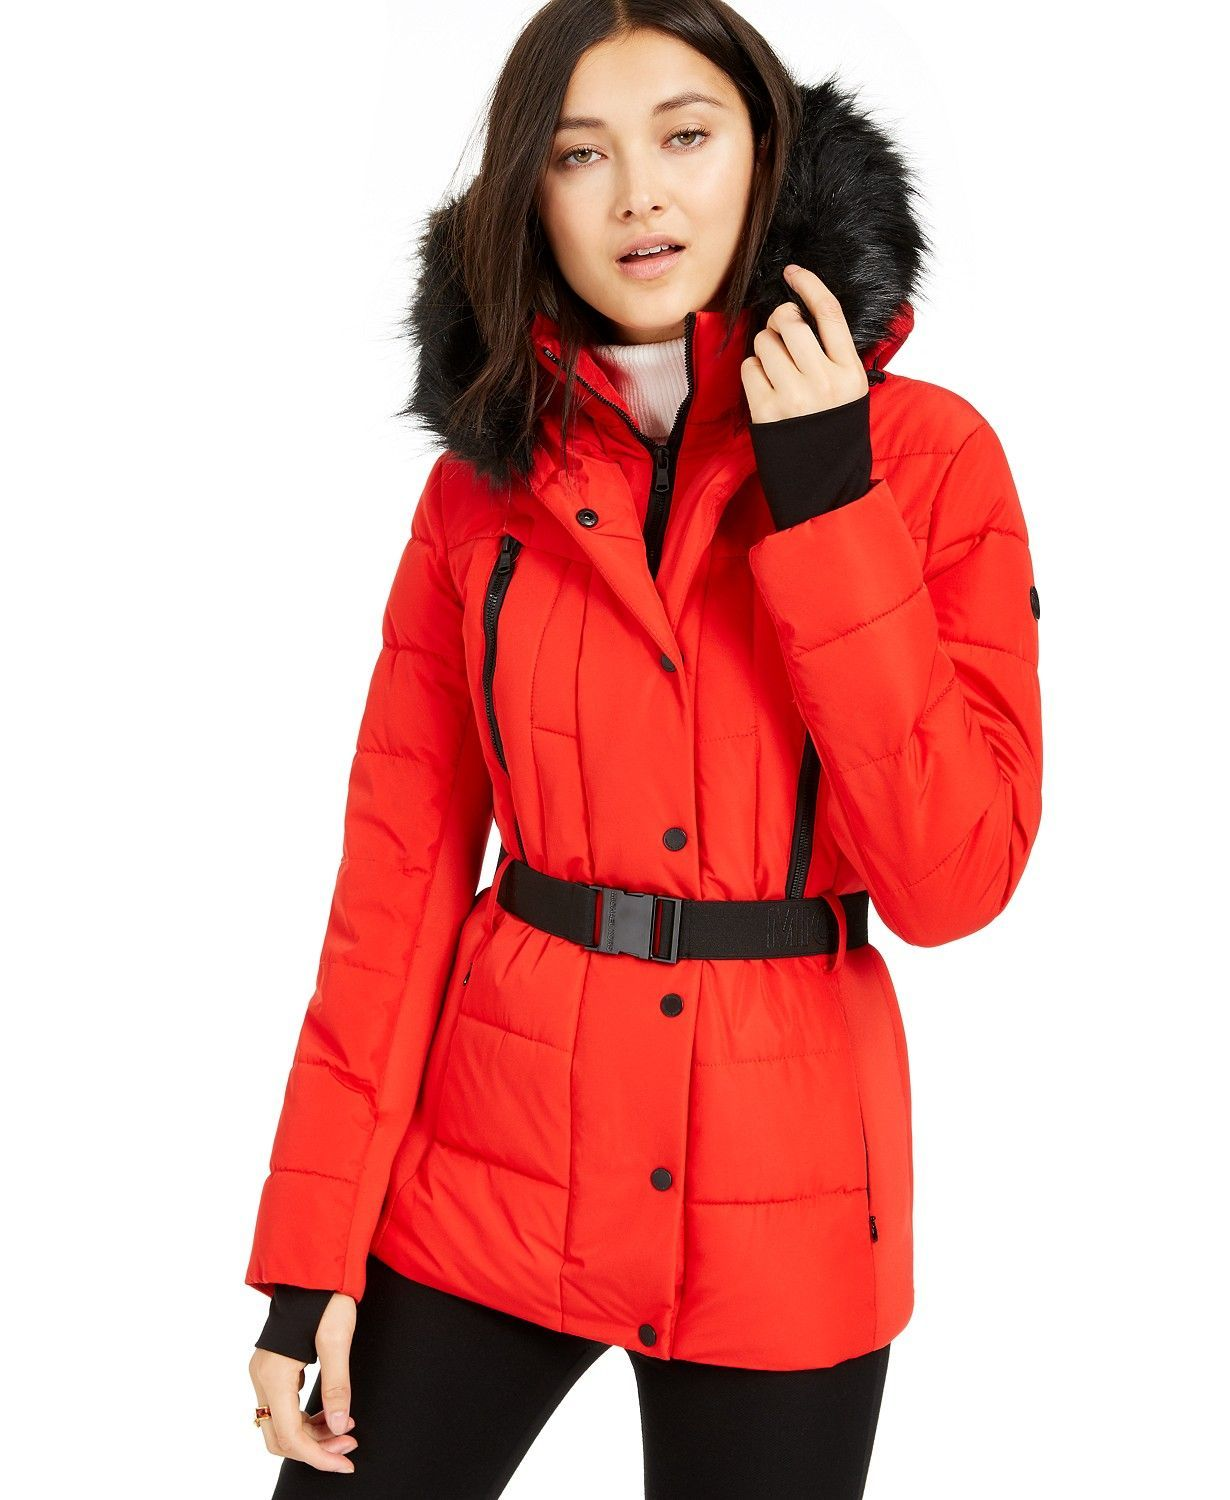 Michael Kors 80 Off Out Of All The Outerwear Deals At Macys This Black Friday We Think That This Jacket Fro Puffer Coat Coats For Women Coats Jackets Women [ 1500 x 1230 Pixel ]